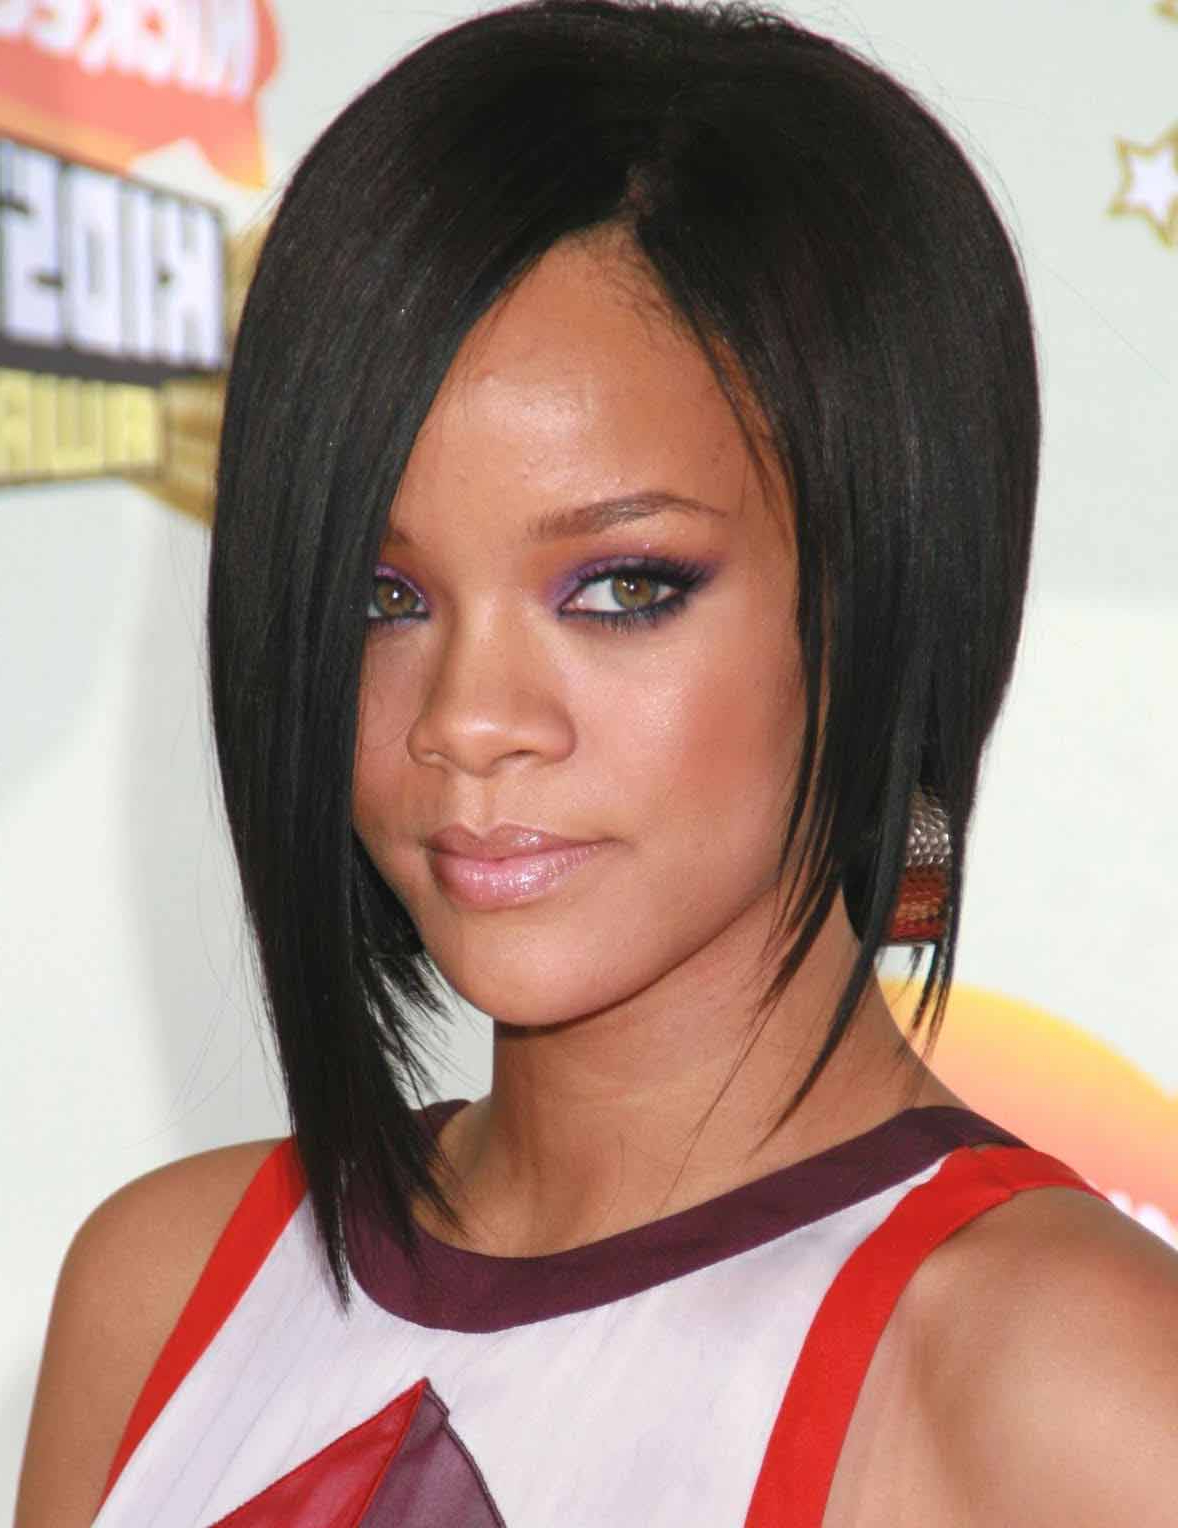 Best Hairstyles For Big Foreheads Intended For Popular Medium Hairstyles For Big Foreheads (View 4 of 20)